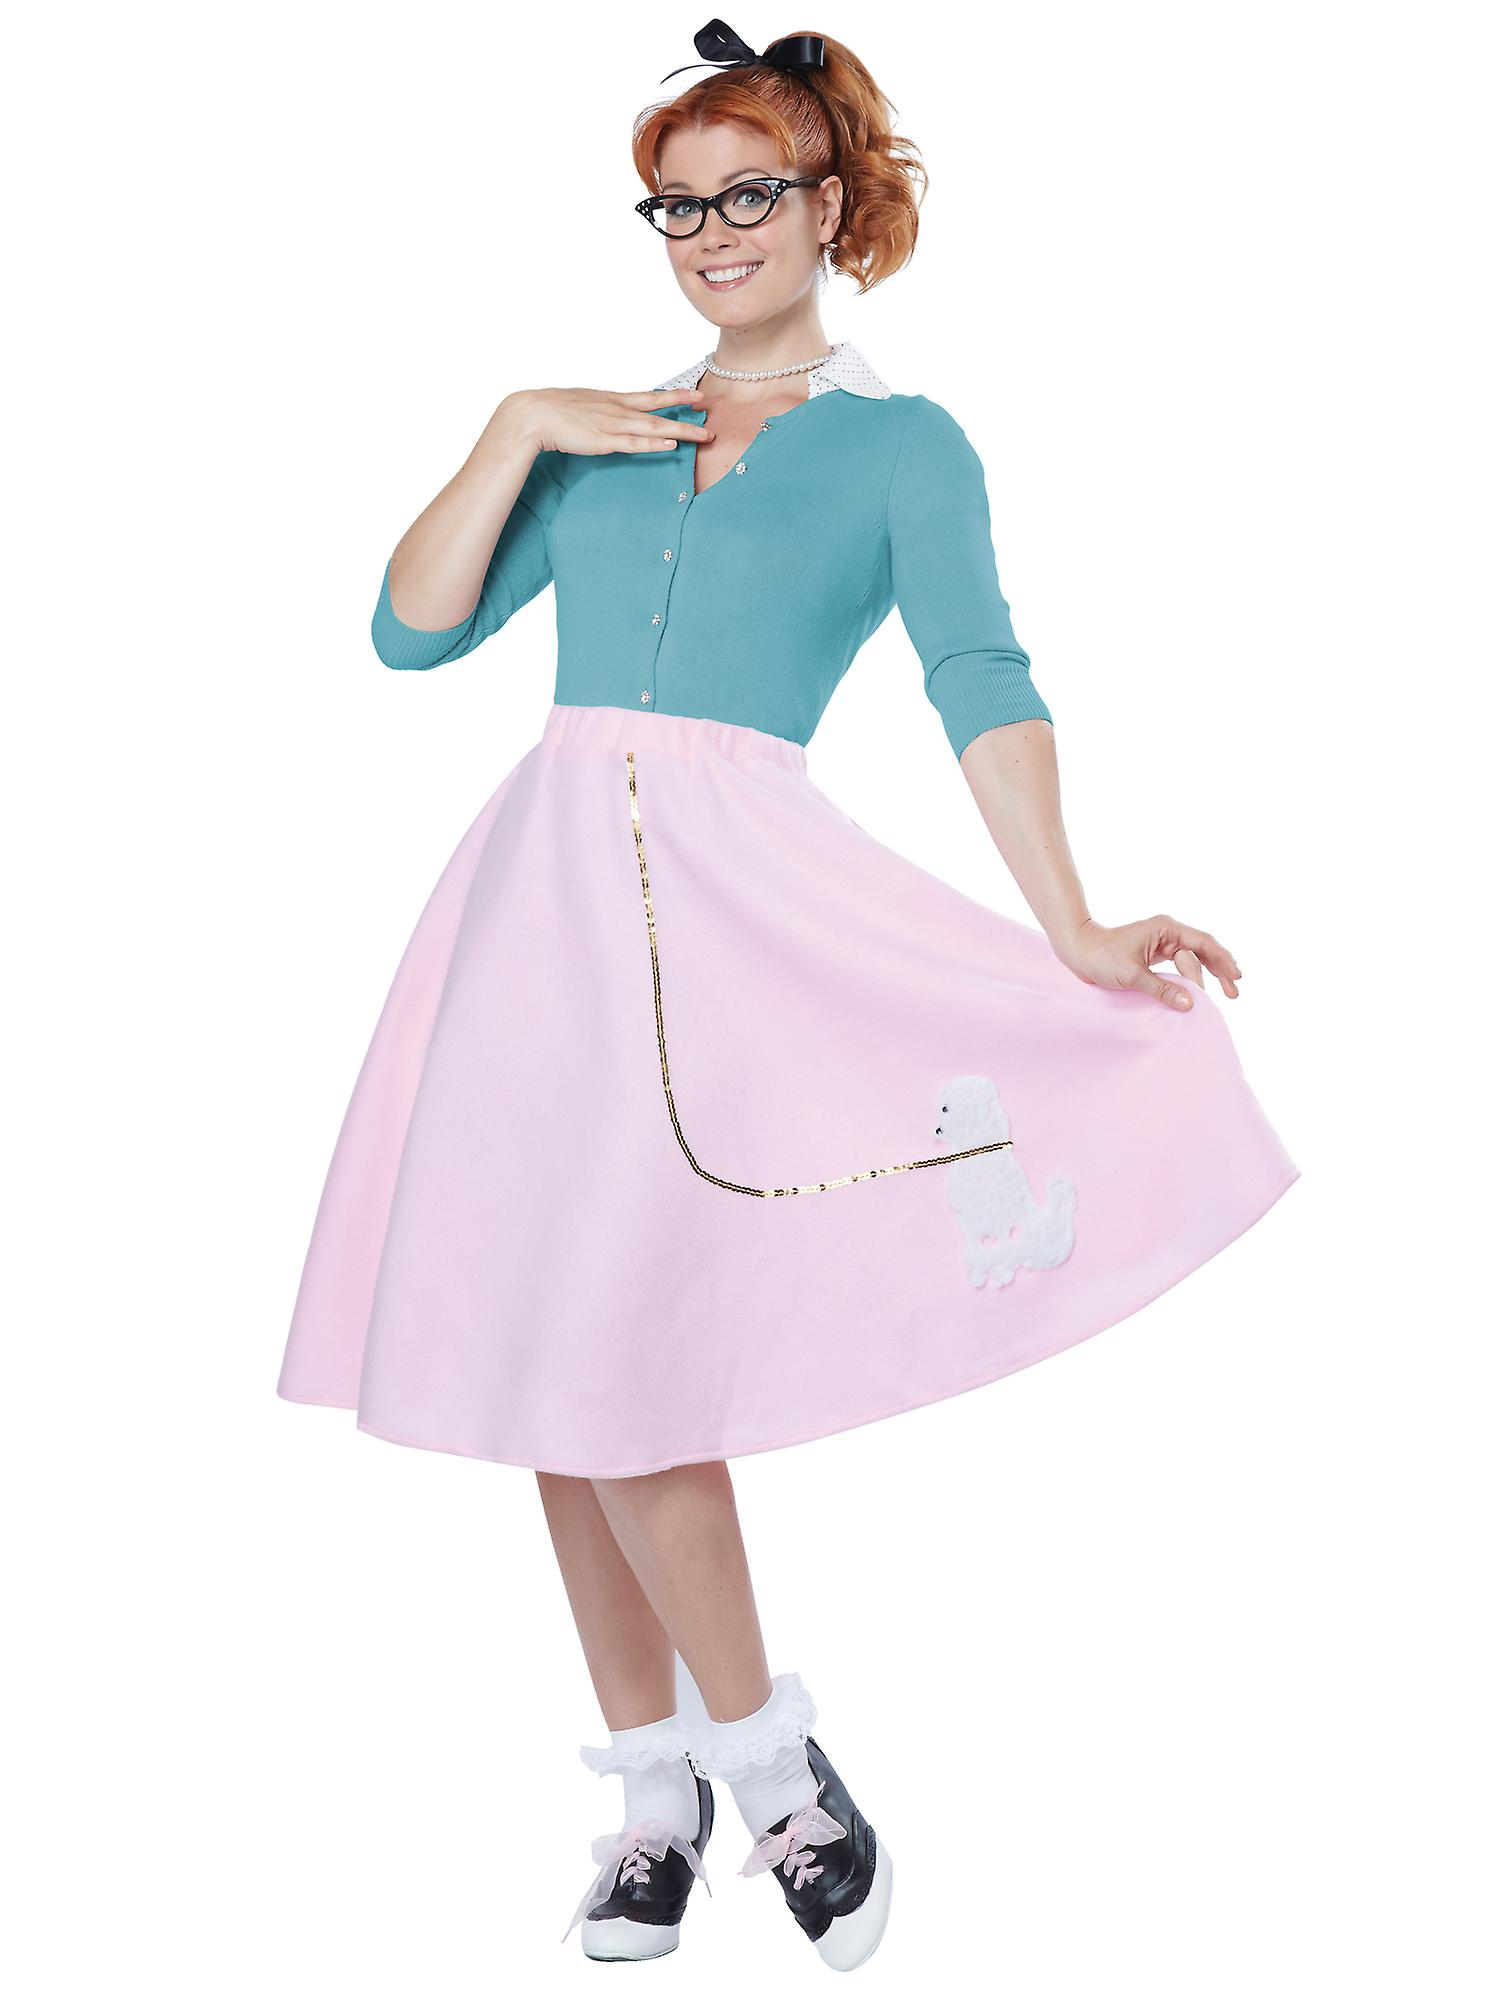 0e8a7a5ef715 Poodle Skirt 1950s Pink Sock Hops Hairspray Rock N Roll Womens Costume